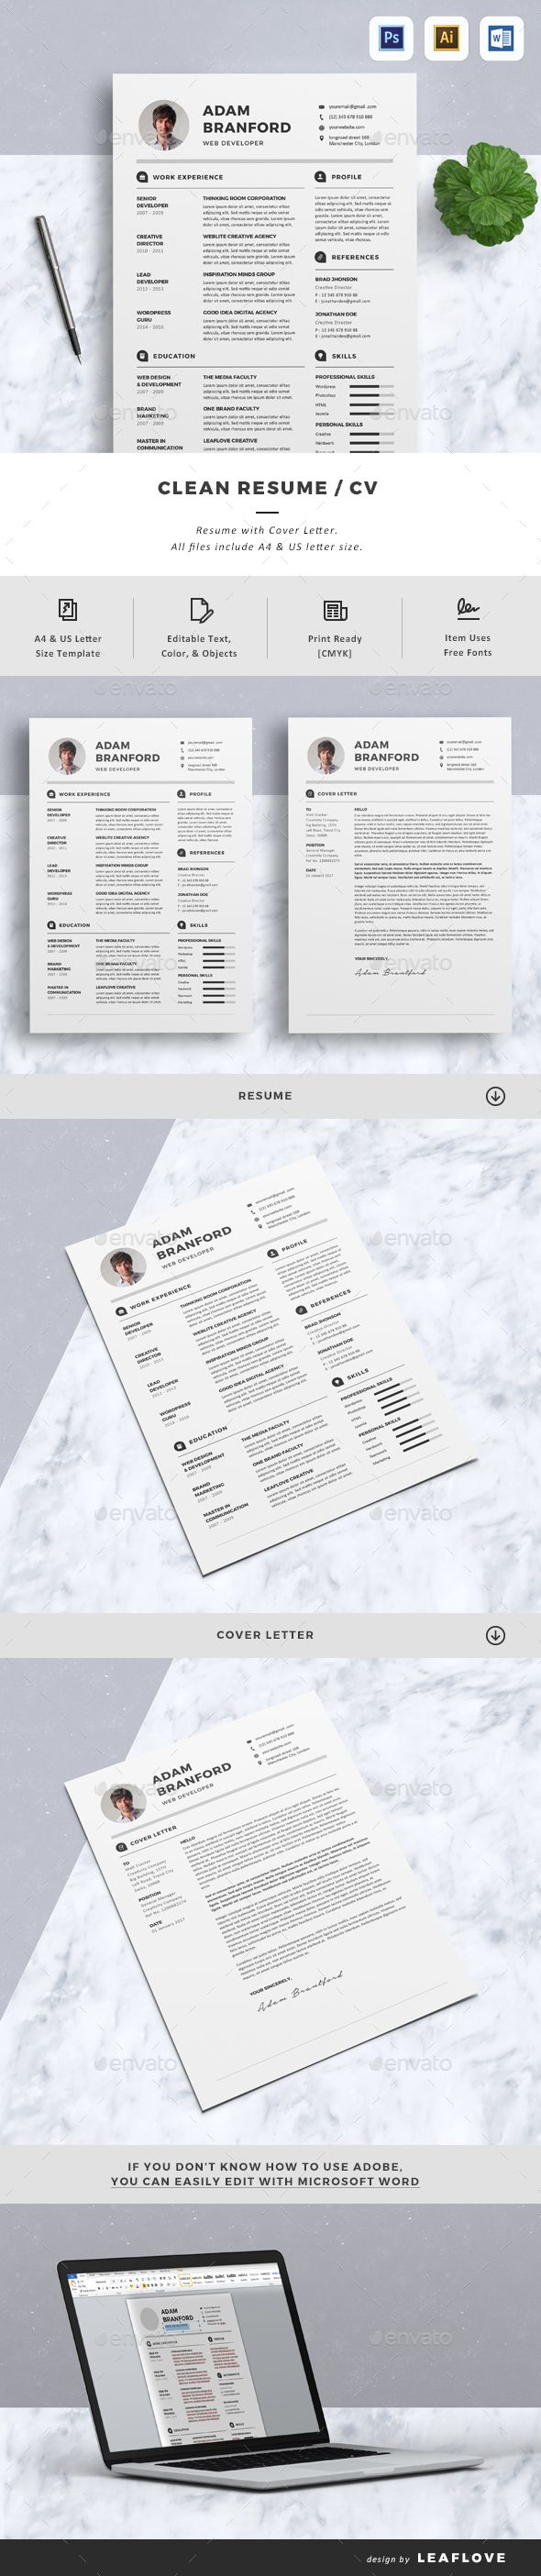 Cv psd templates template and resume cover letters creative resume templates yelopaper Gallery